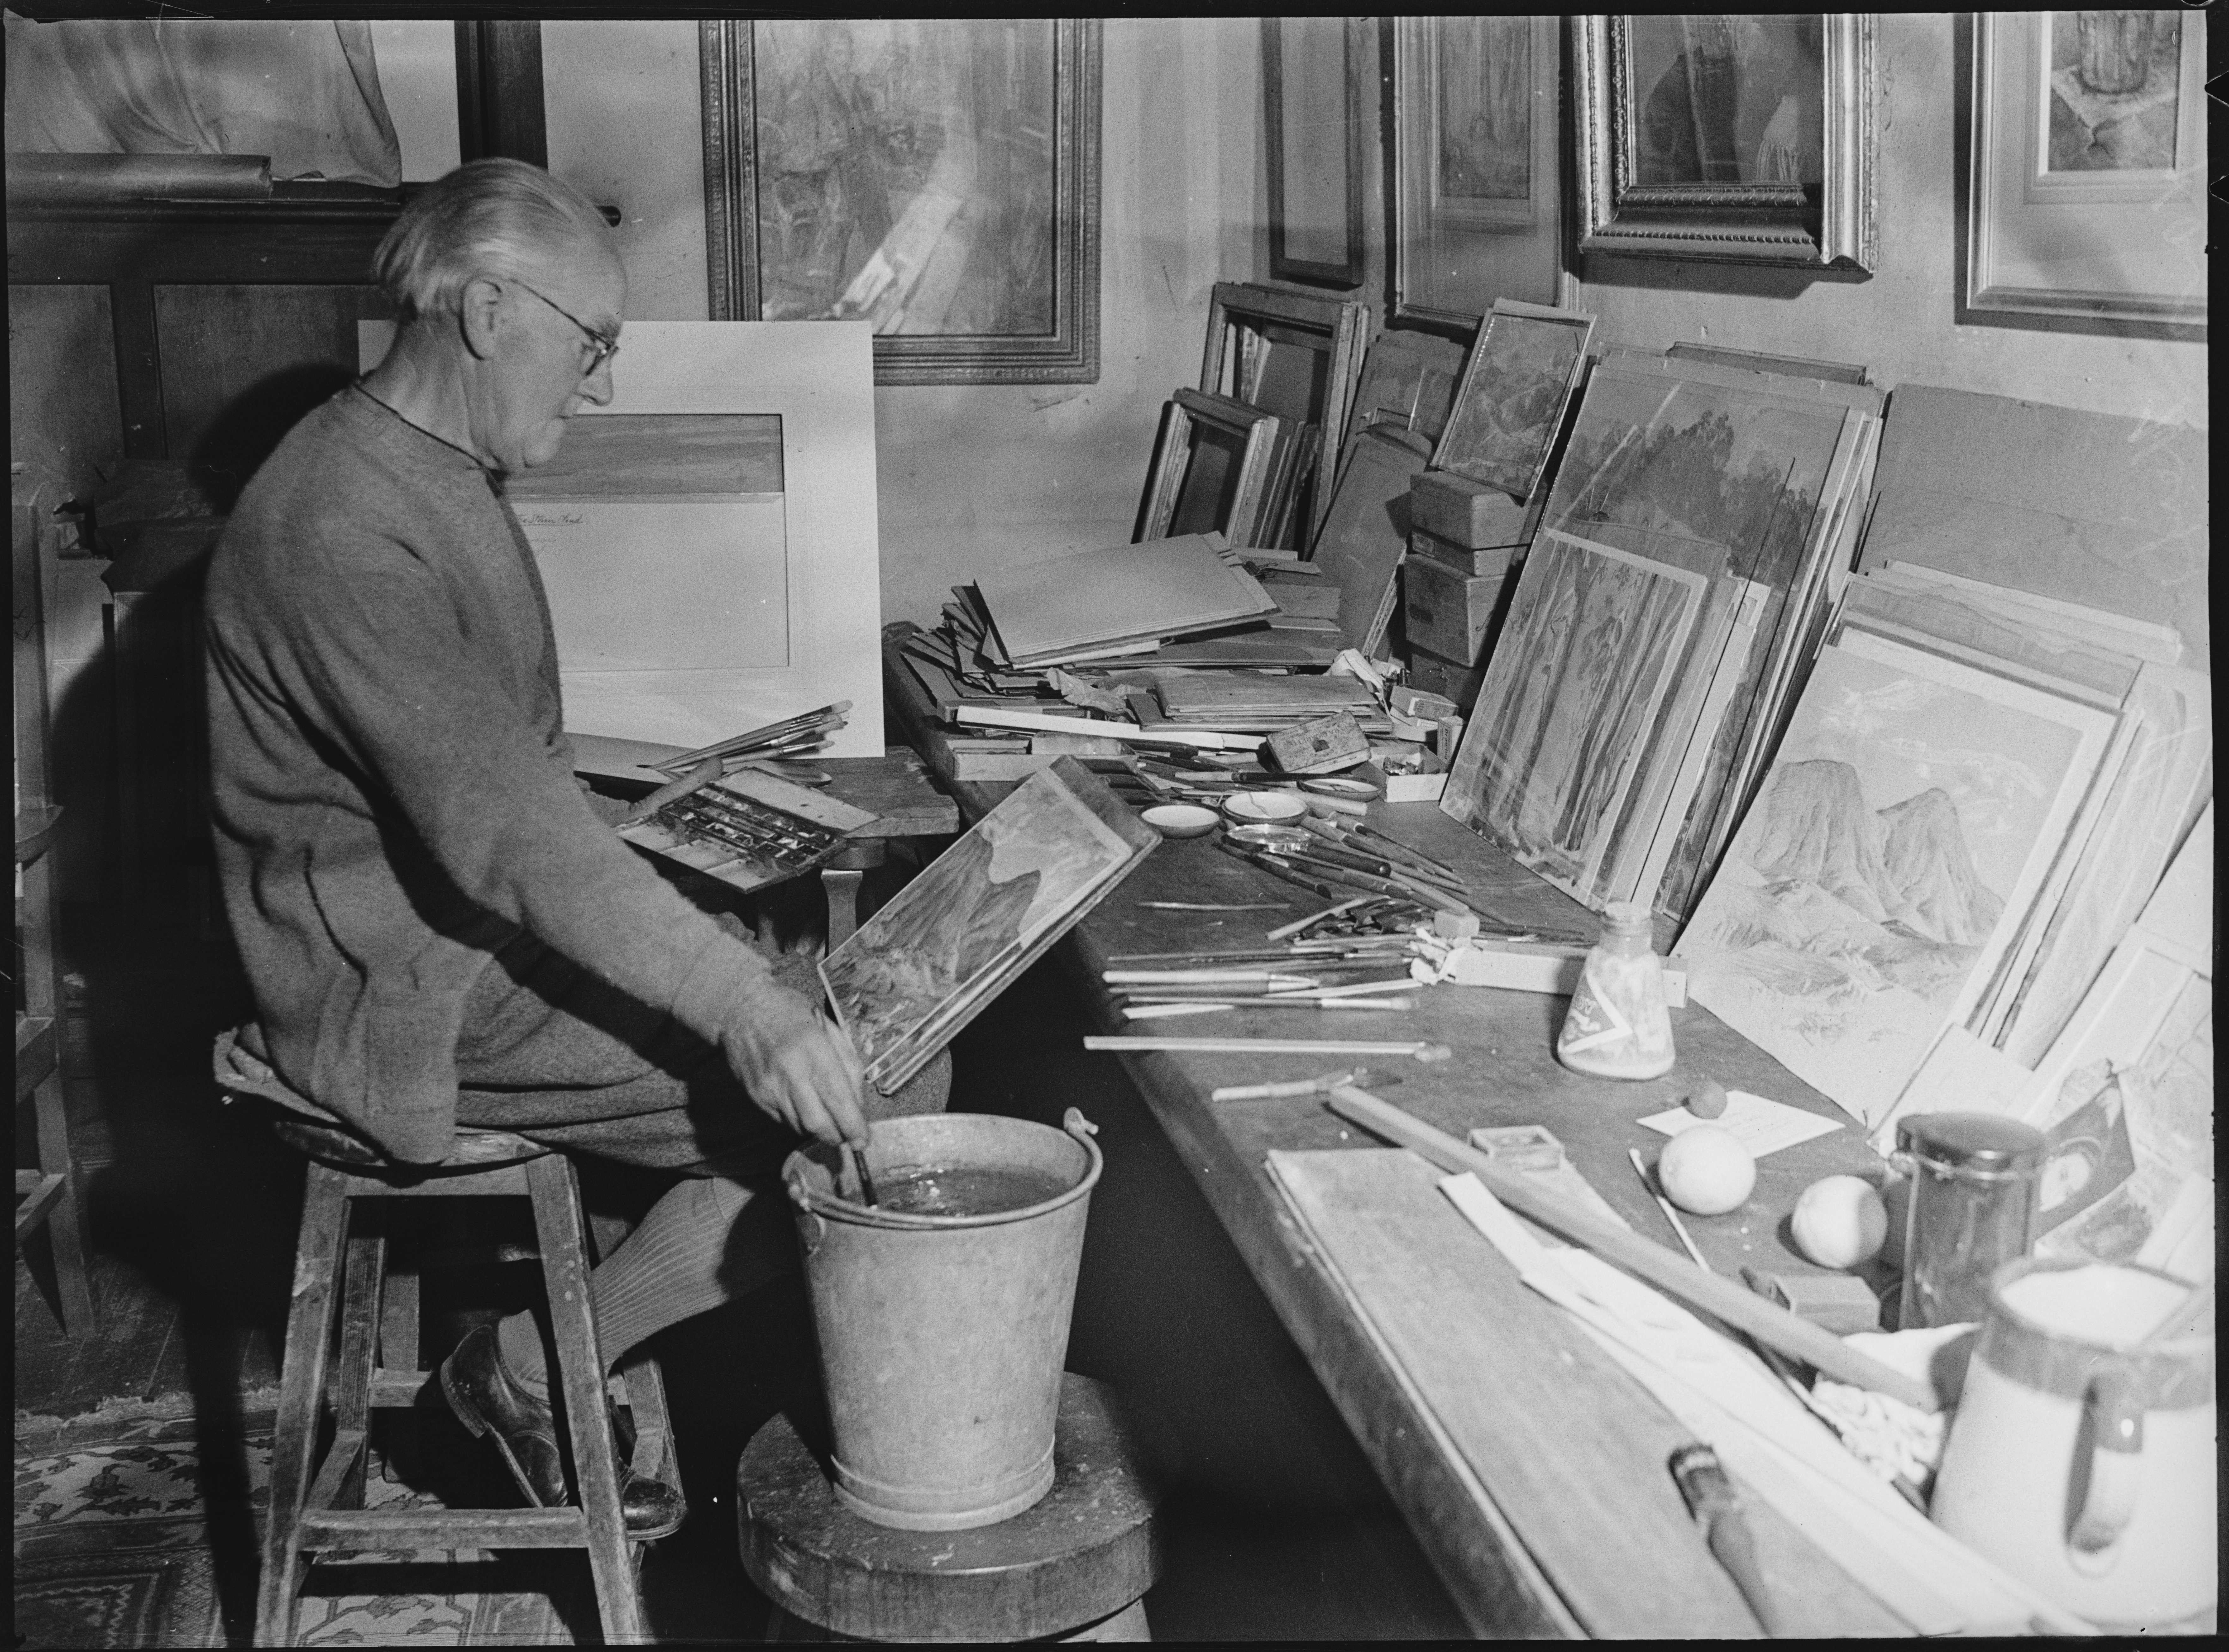 Hans Heysen painting, Hahndorf, photographed by R. Donaldson